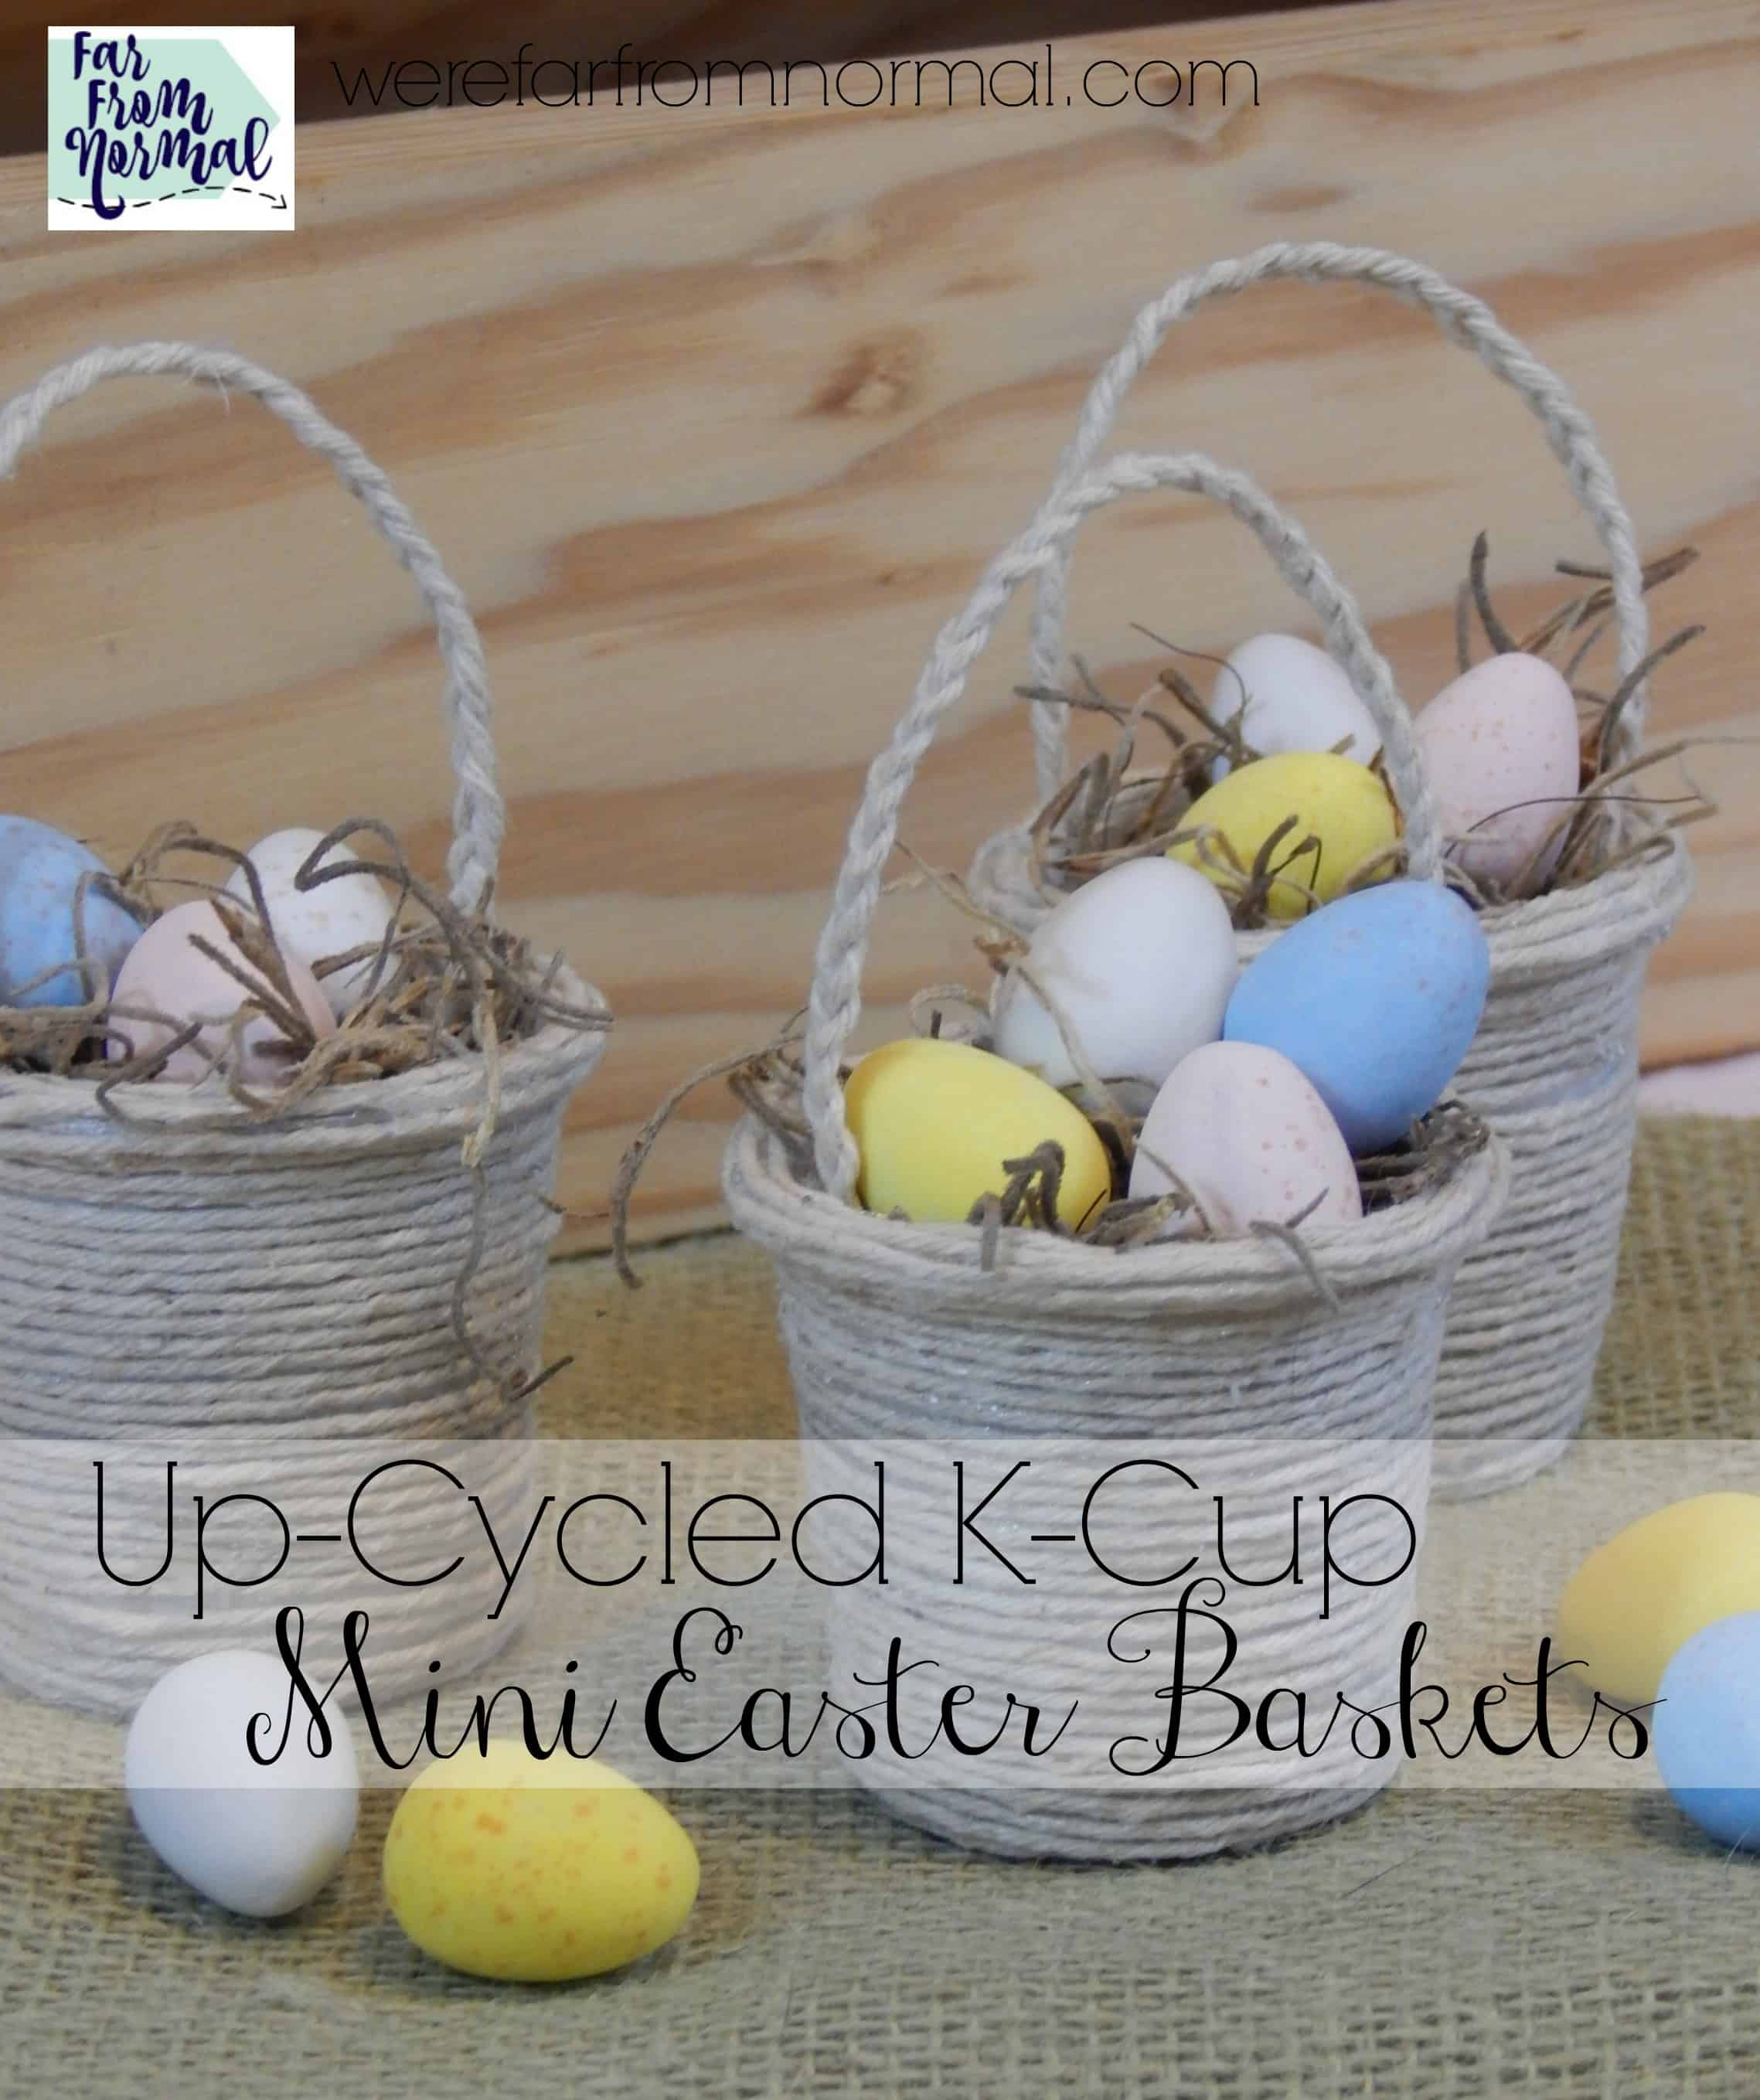 Up-Cycled K-Cup Mini Easter Baskets